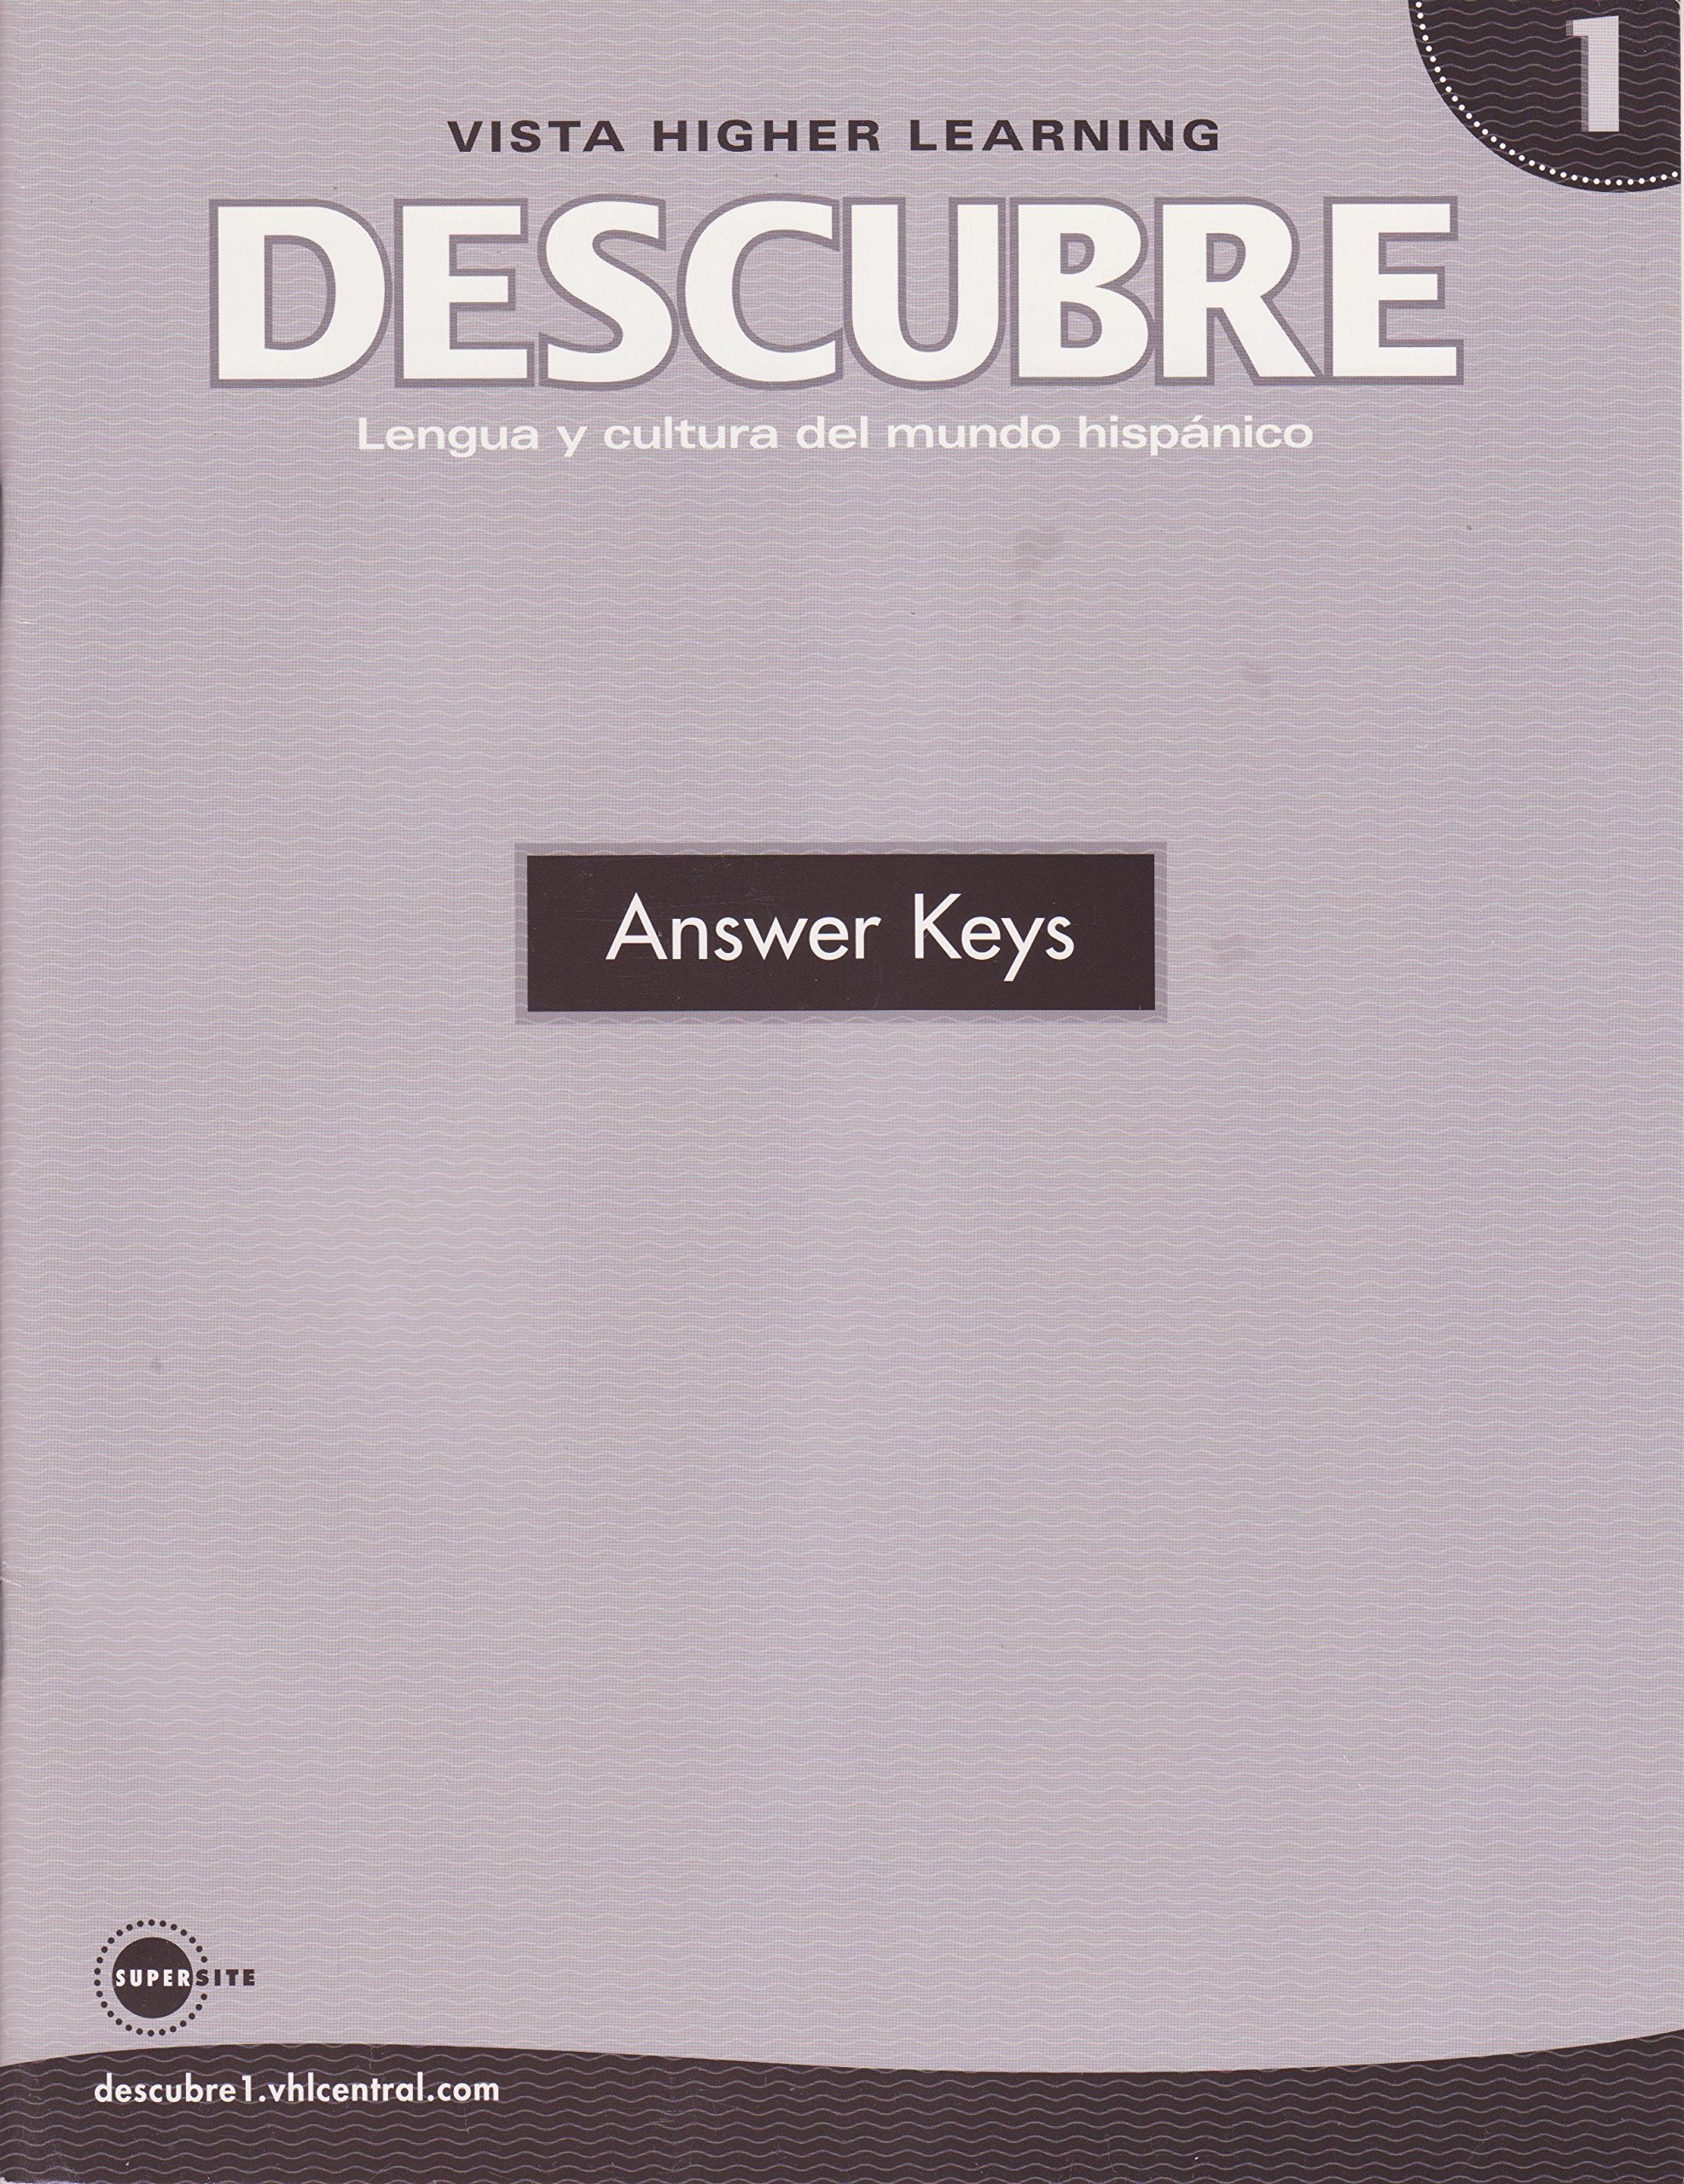 Descubre nivel 1 answer keys lengua y cultura del mundo hispano descubre nivel 1 answer keys lengua y cultura del mundo hispano blanco and donley 9781600072628 amazon books fandeluxe Gallery